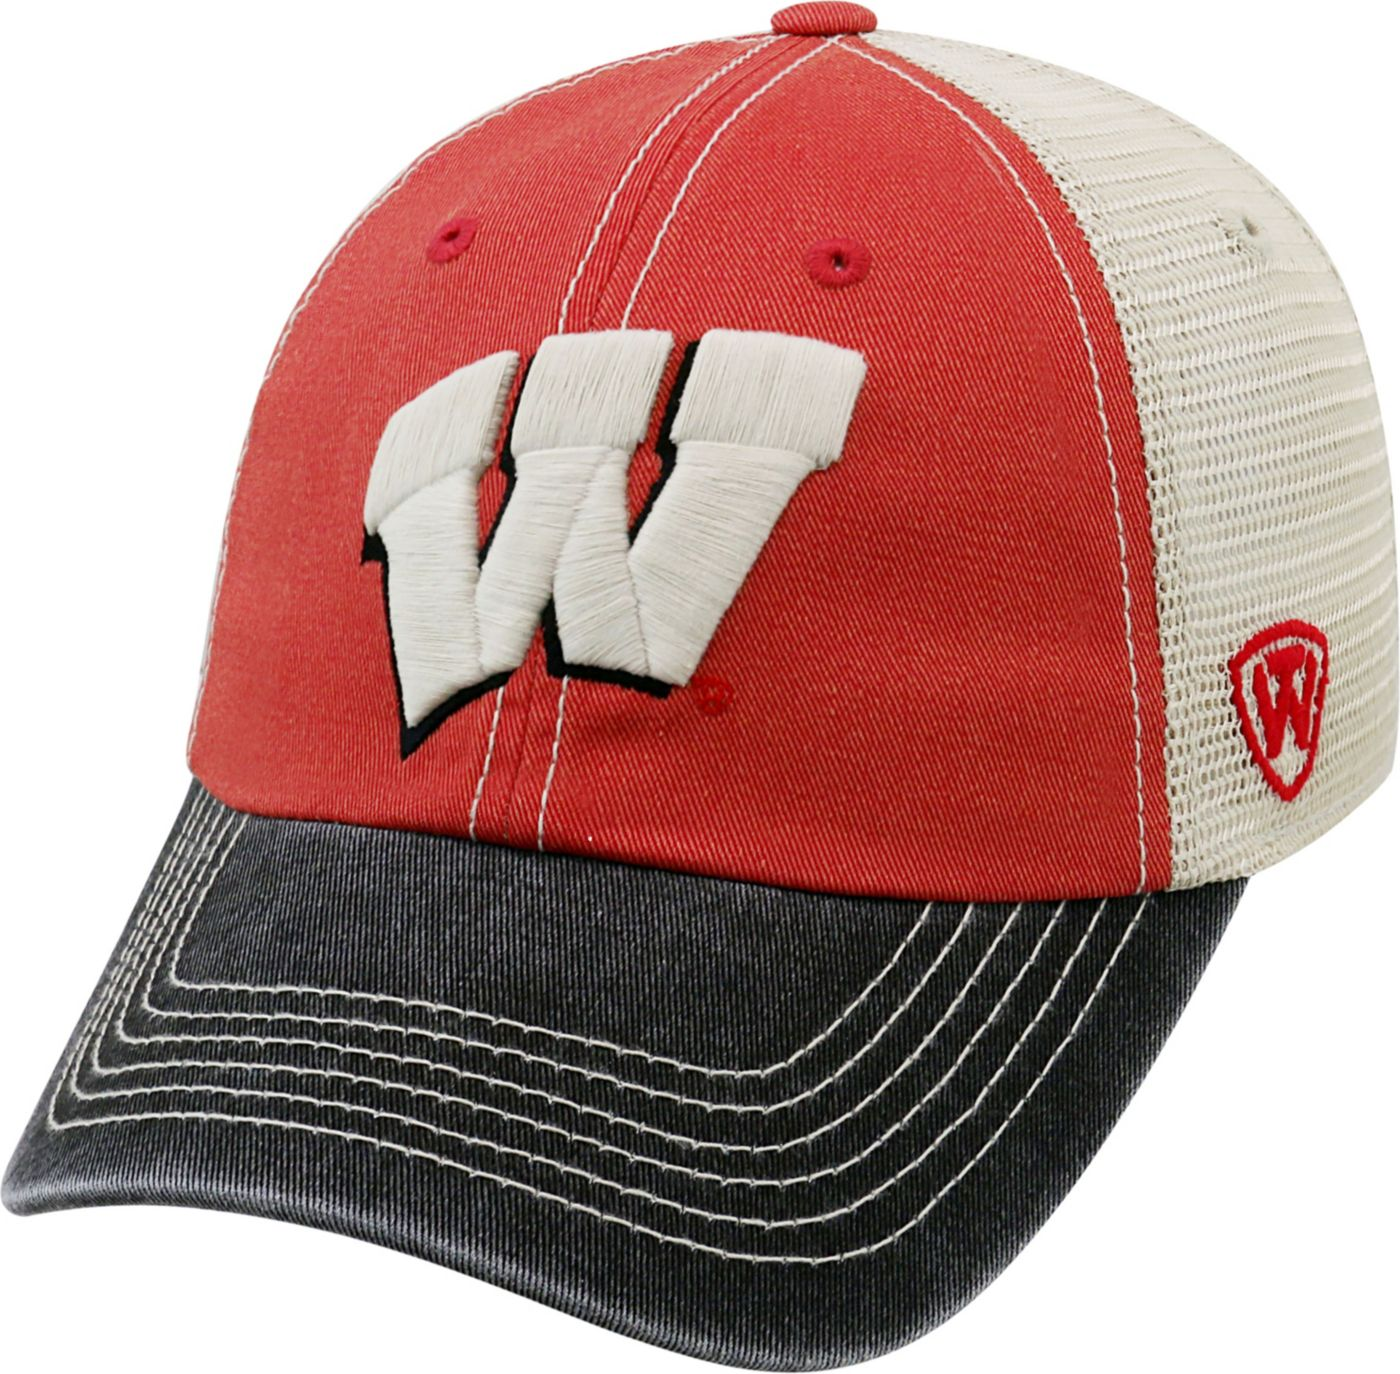 Top of the World Men's Wisconsin Badgers Red/White/Black Off Road Adjustable Hat